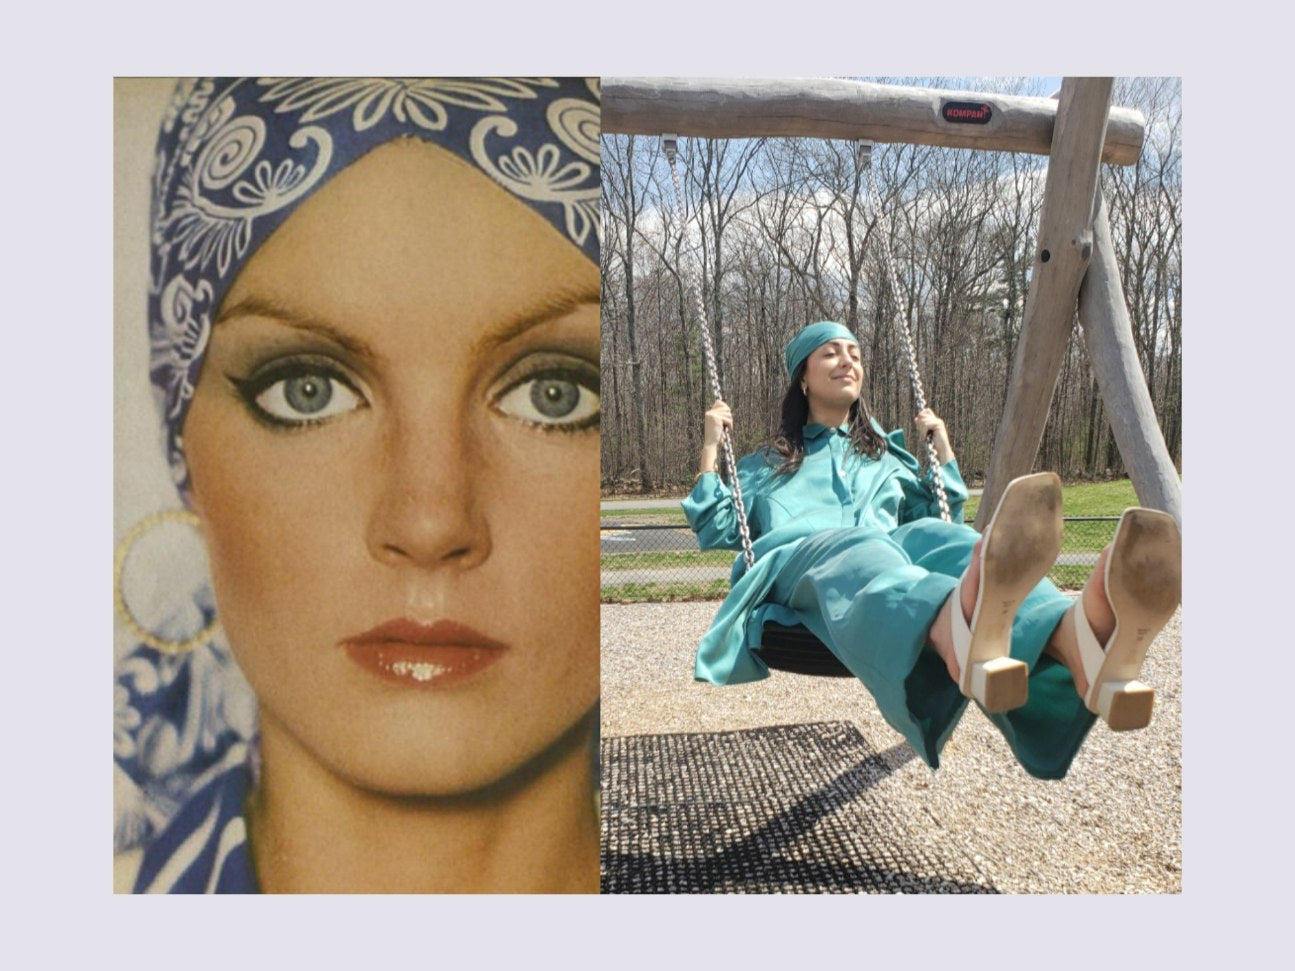 Twiggy makeup. Cher style. 70s style fashion with headscarf. Green silk beachy headscarf for women.